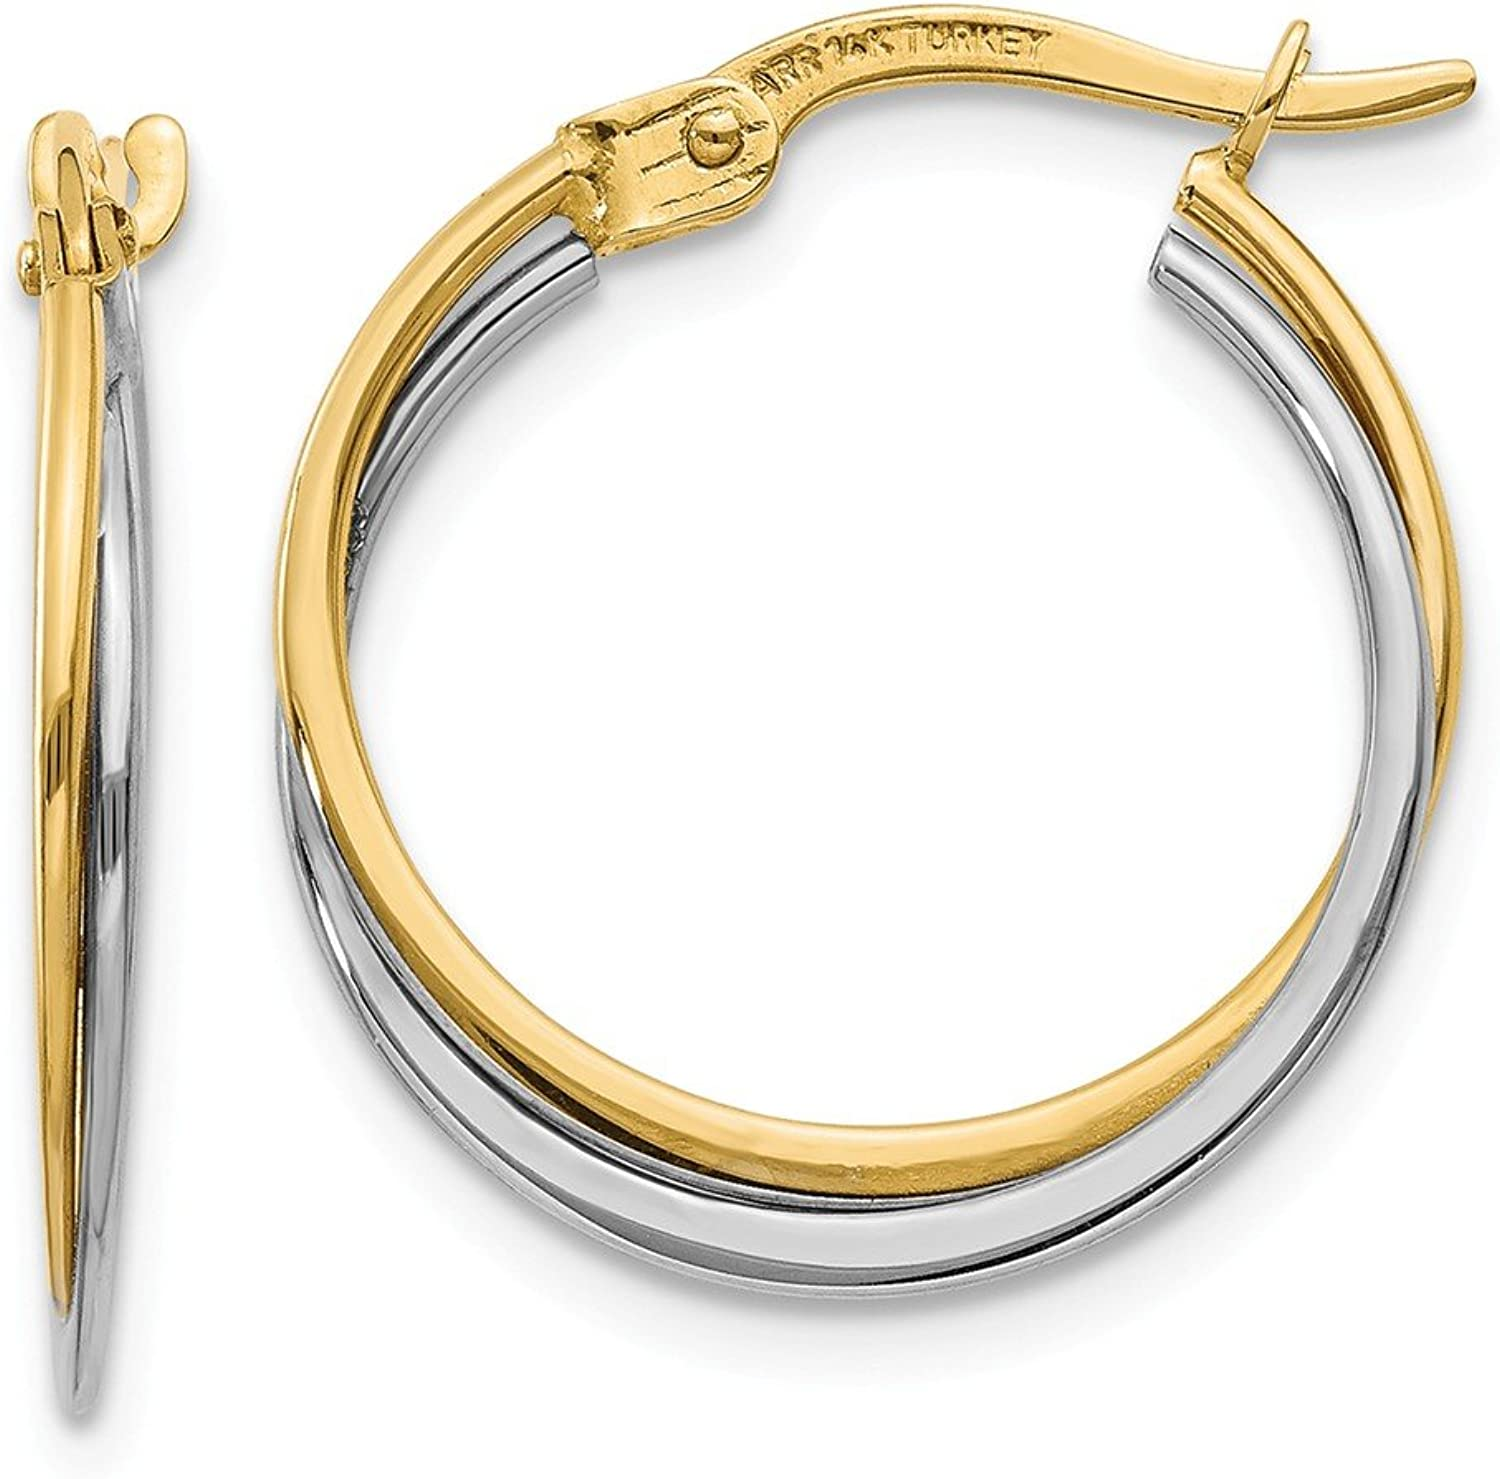 Beautiful White and yellow gold 14K Whiteandyellowgold 14K TwoTone Polished Hoop Earrings